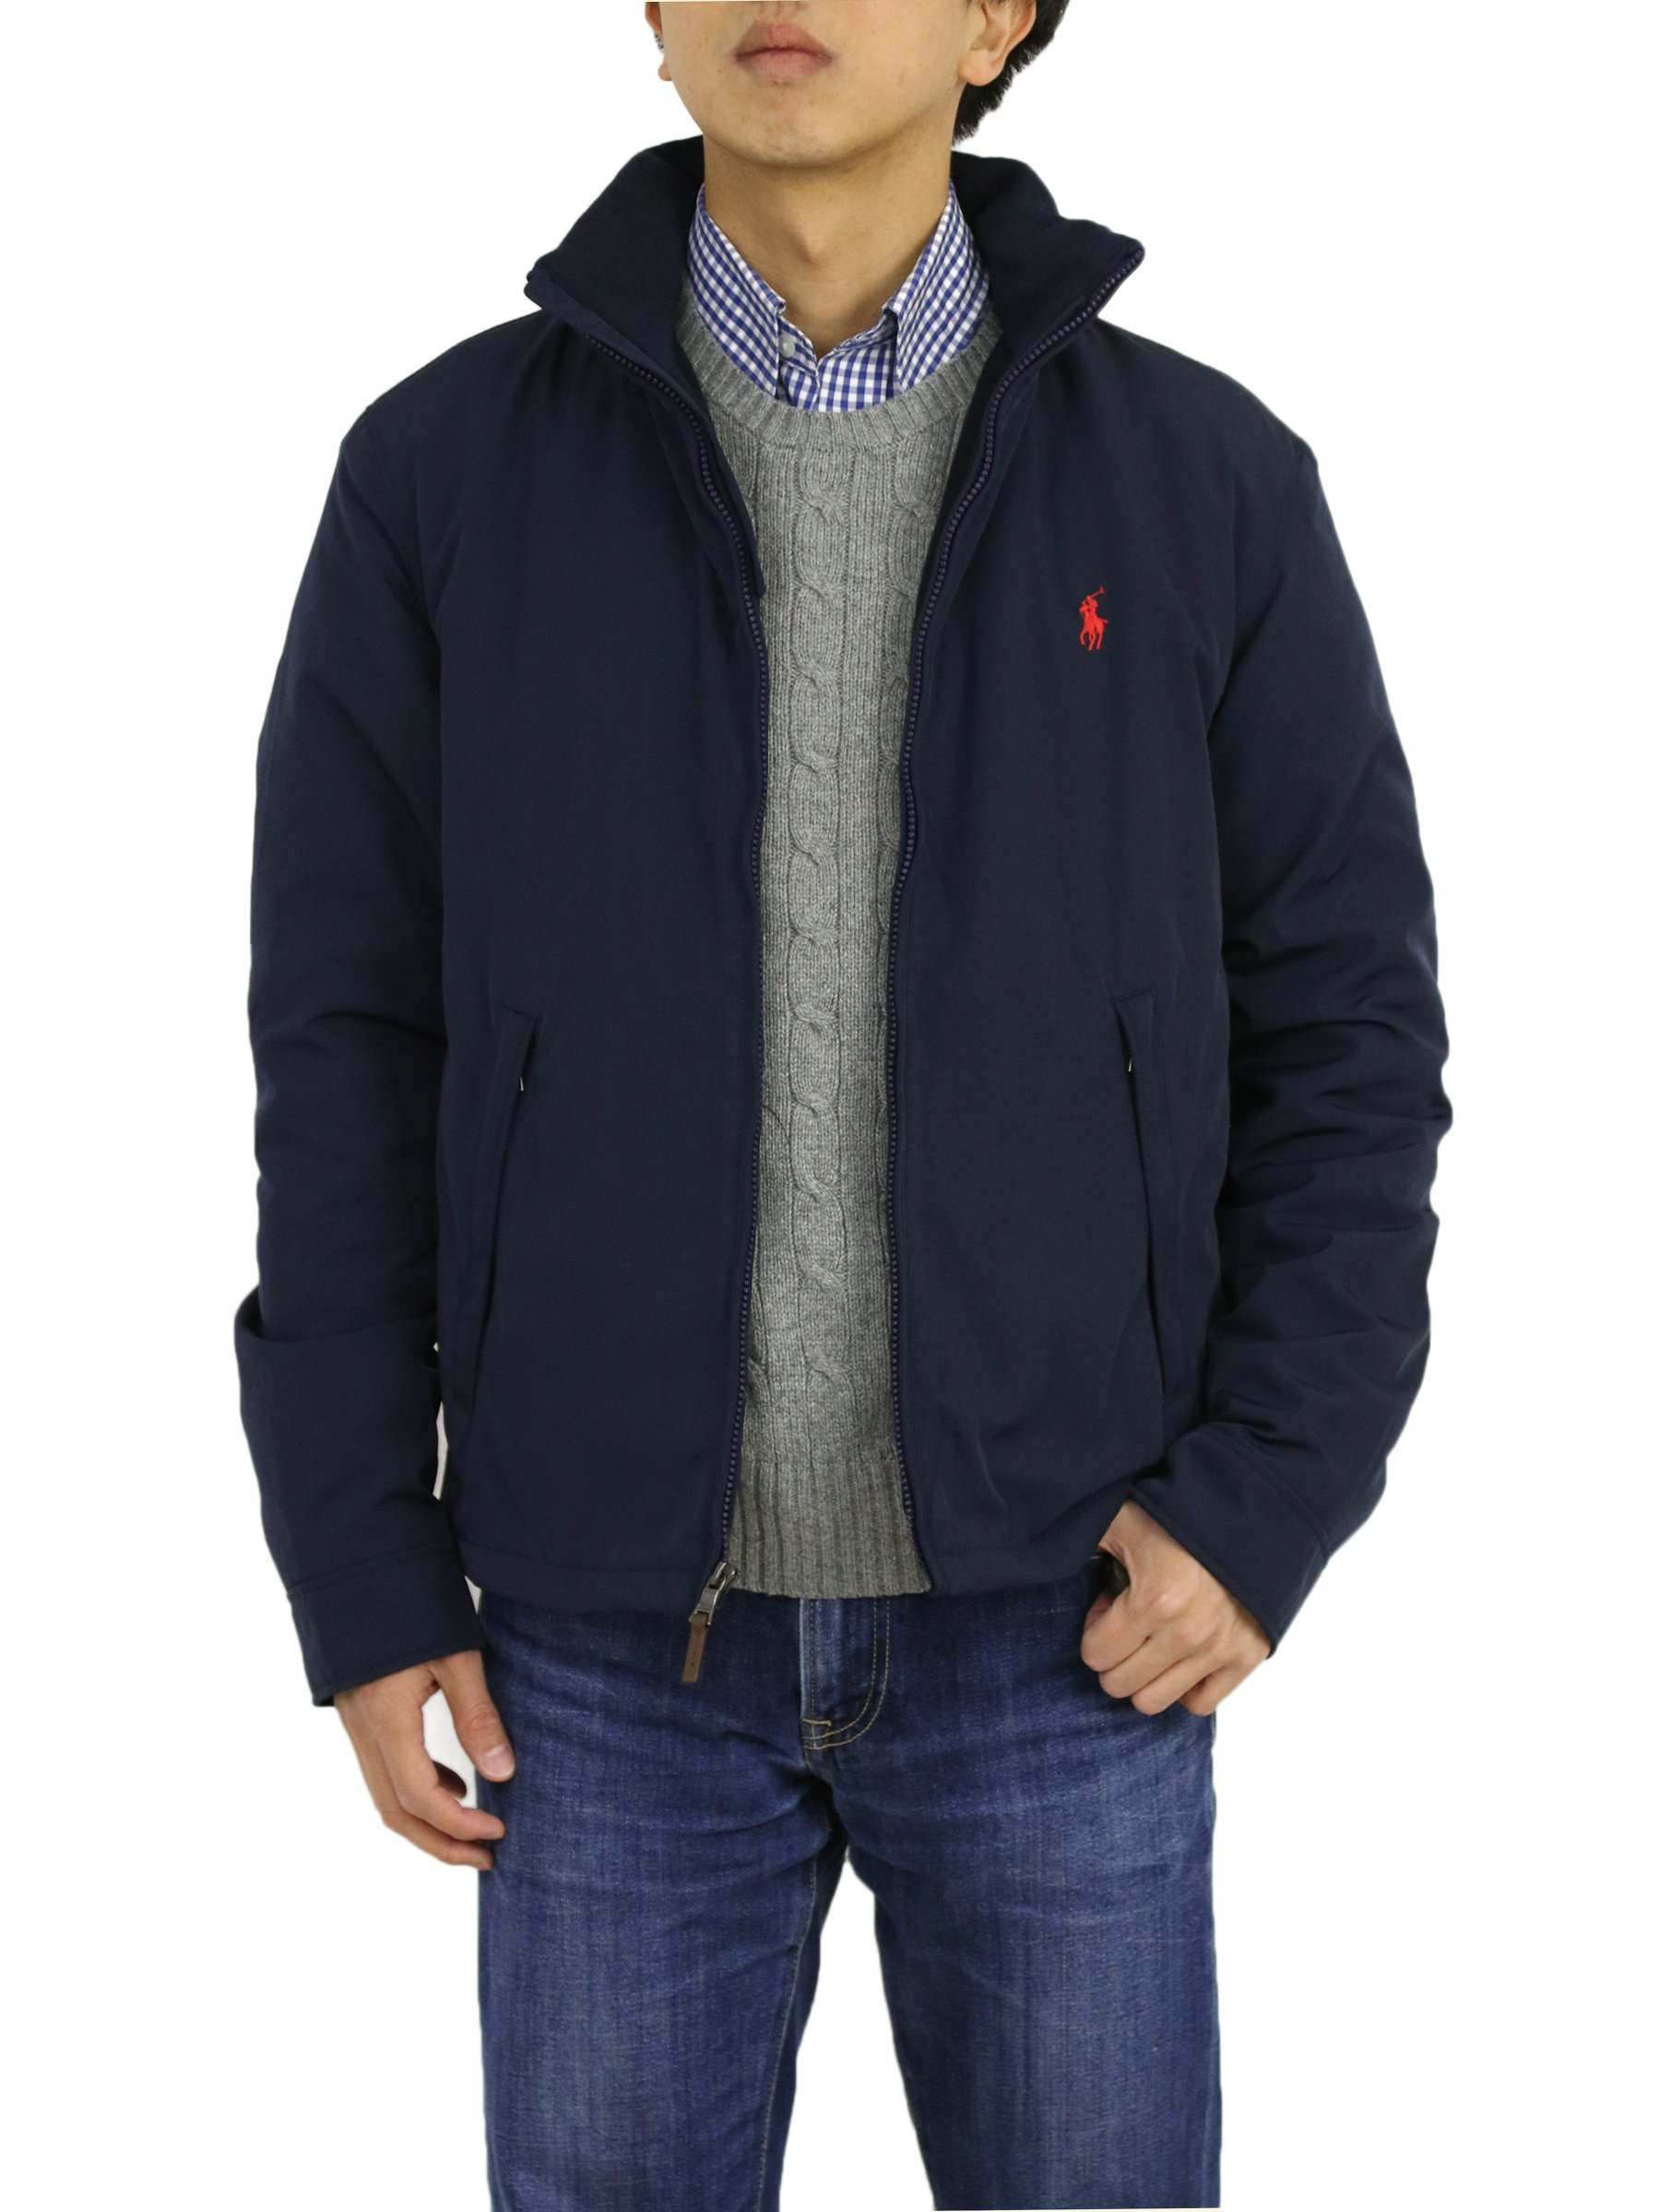 00d17fa96 Galleon - Polo Ralph Lauren Mens Perry Lined Winter Jacket (XL